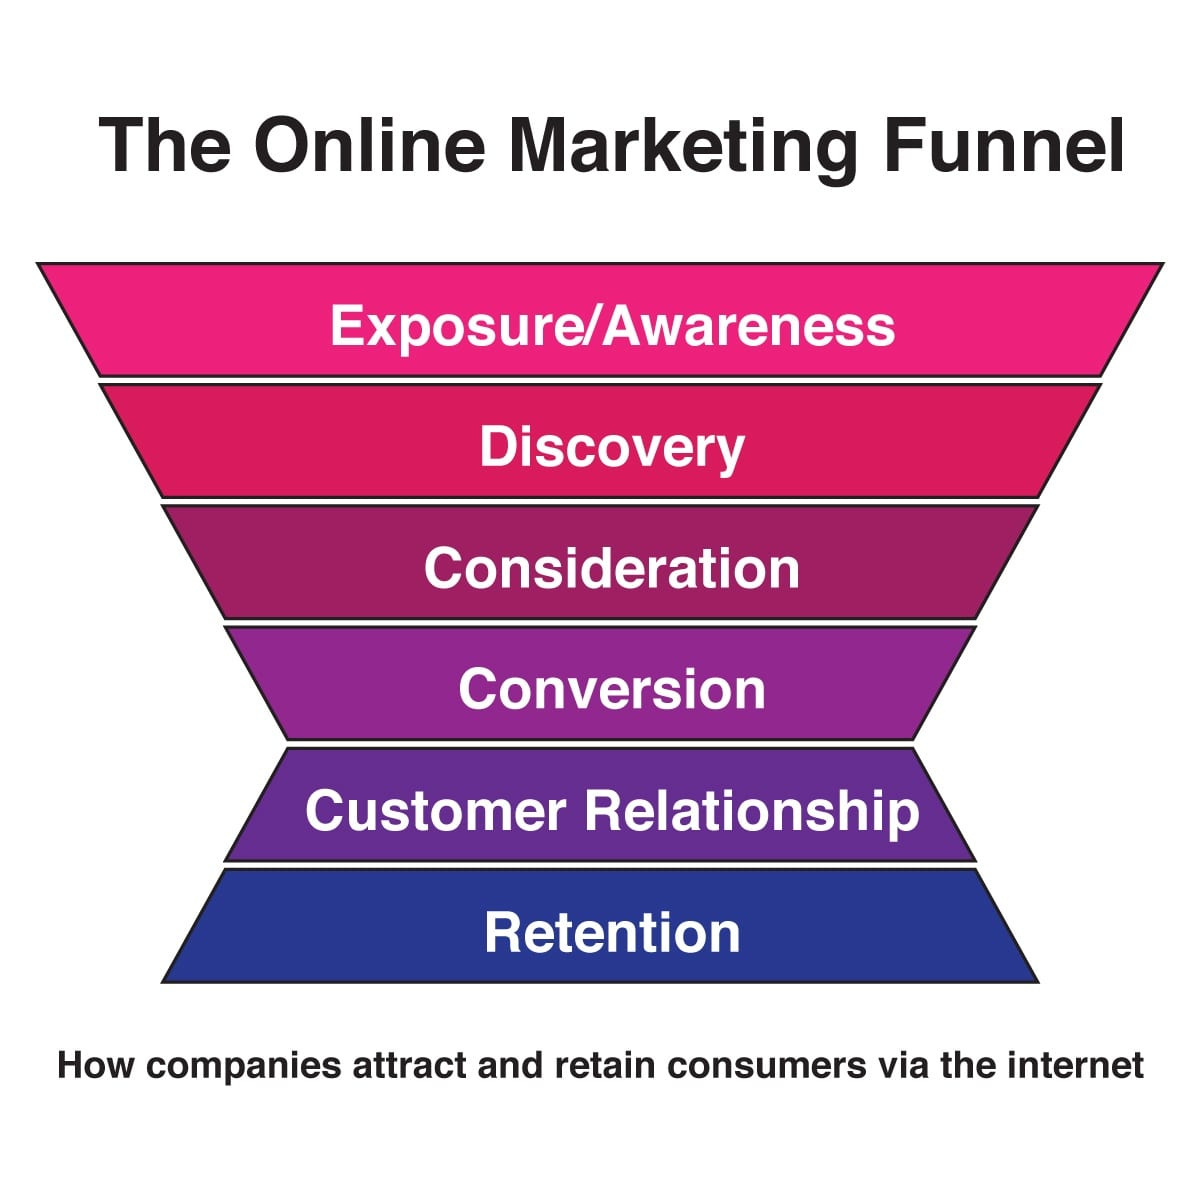 Il marketing funnel applicato alle app.